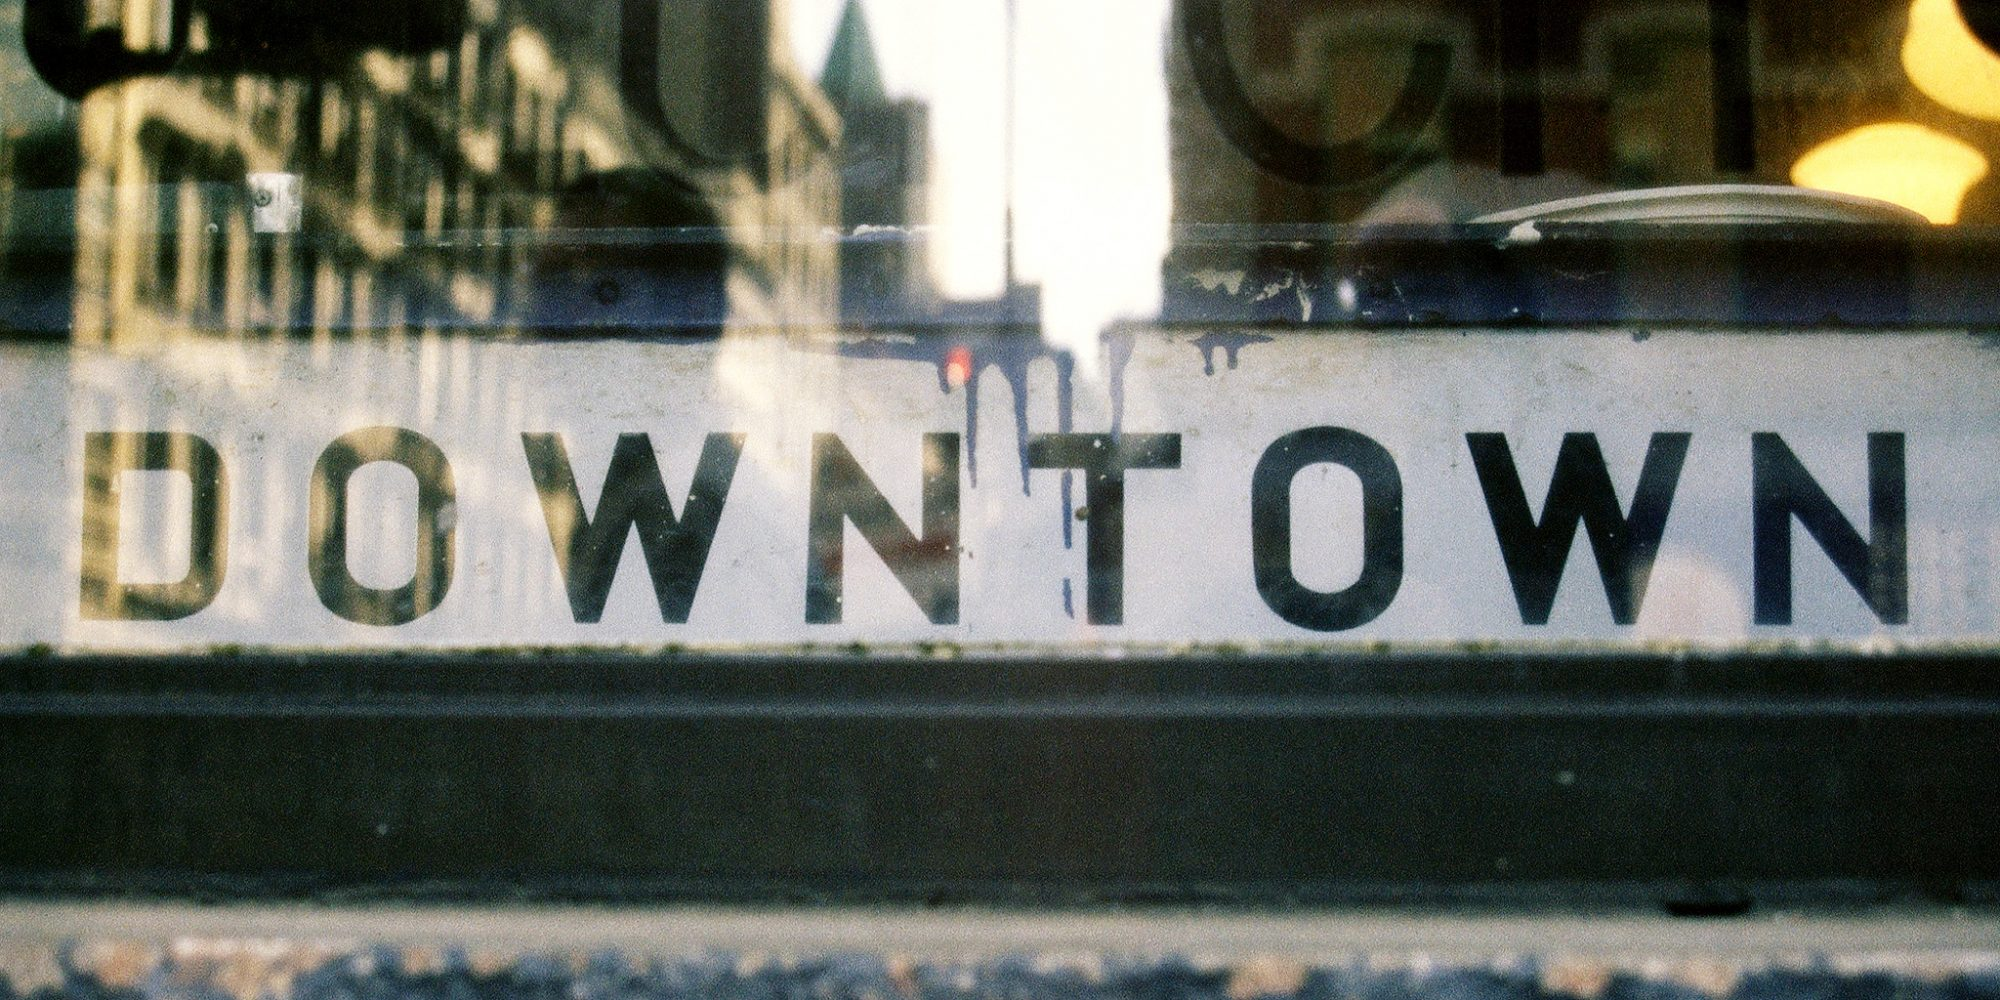 Downtown captured vernacular typographic sign in New York City